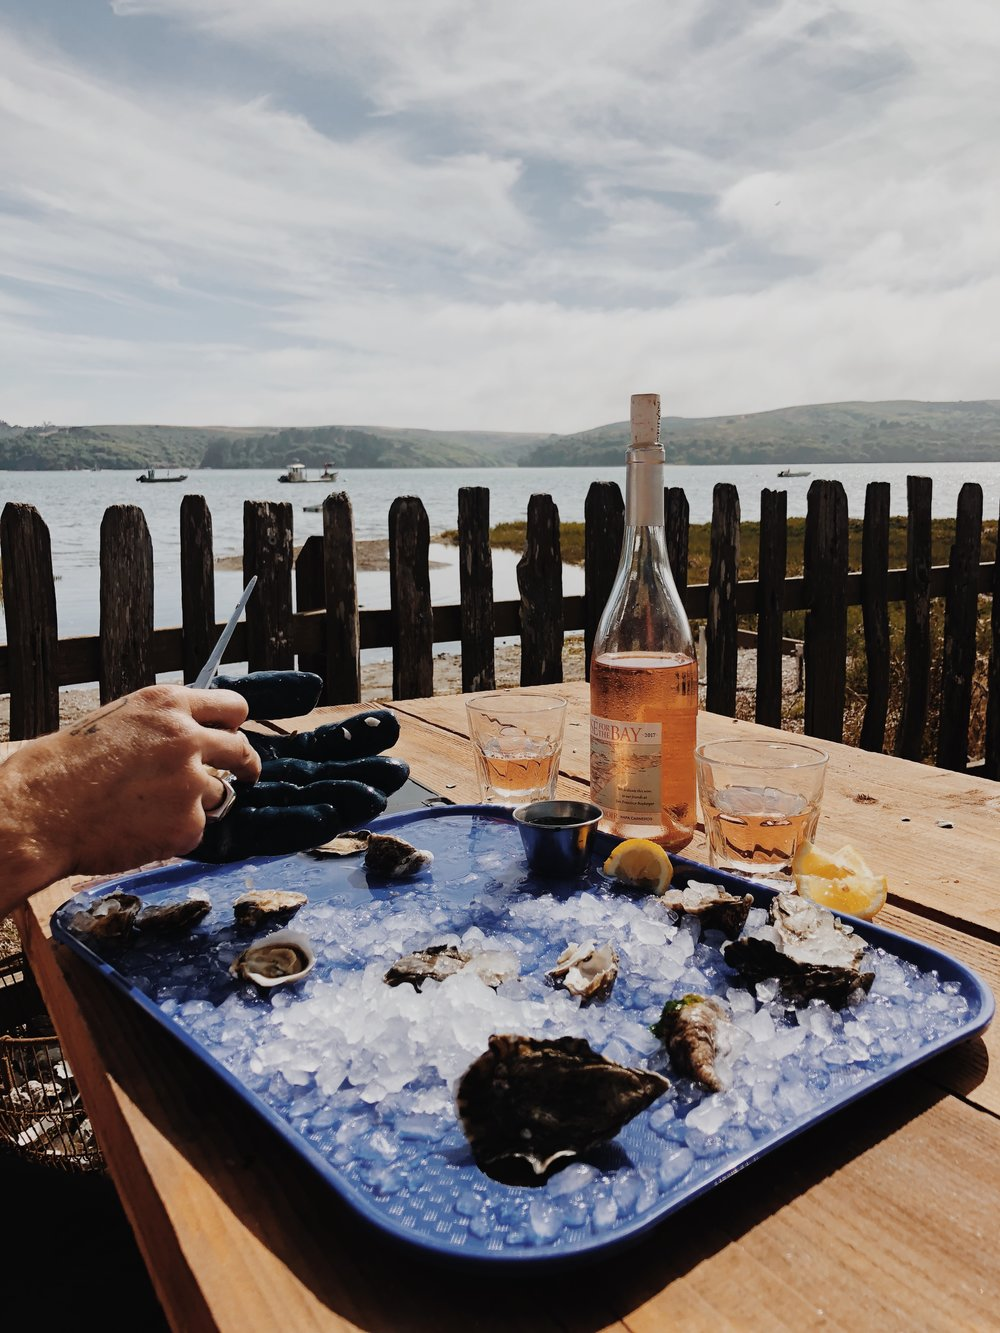 Oysters tomales bay - traveling photo bus.JPG